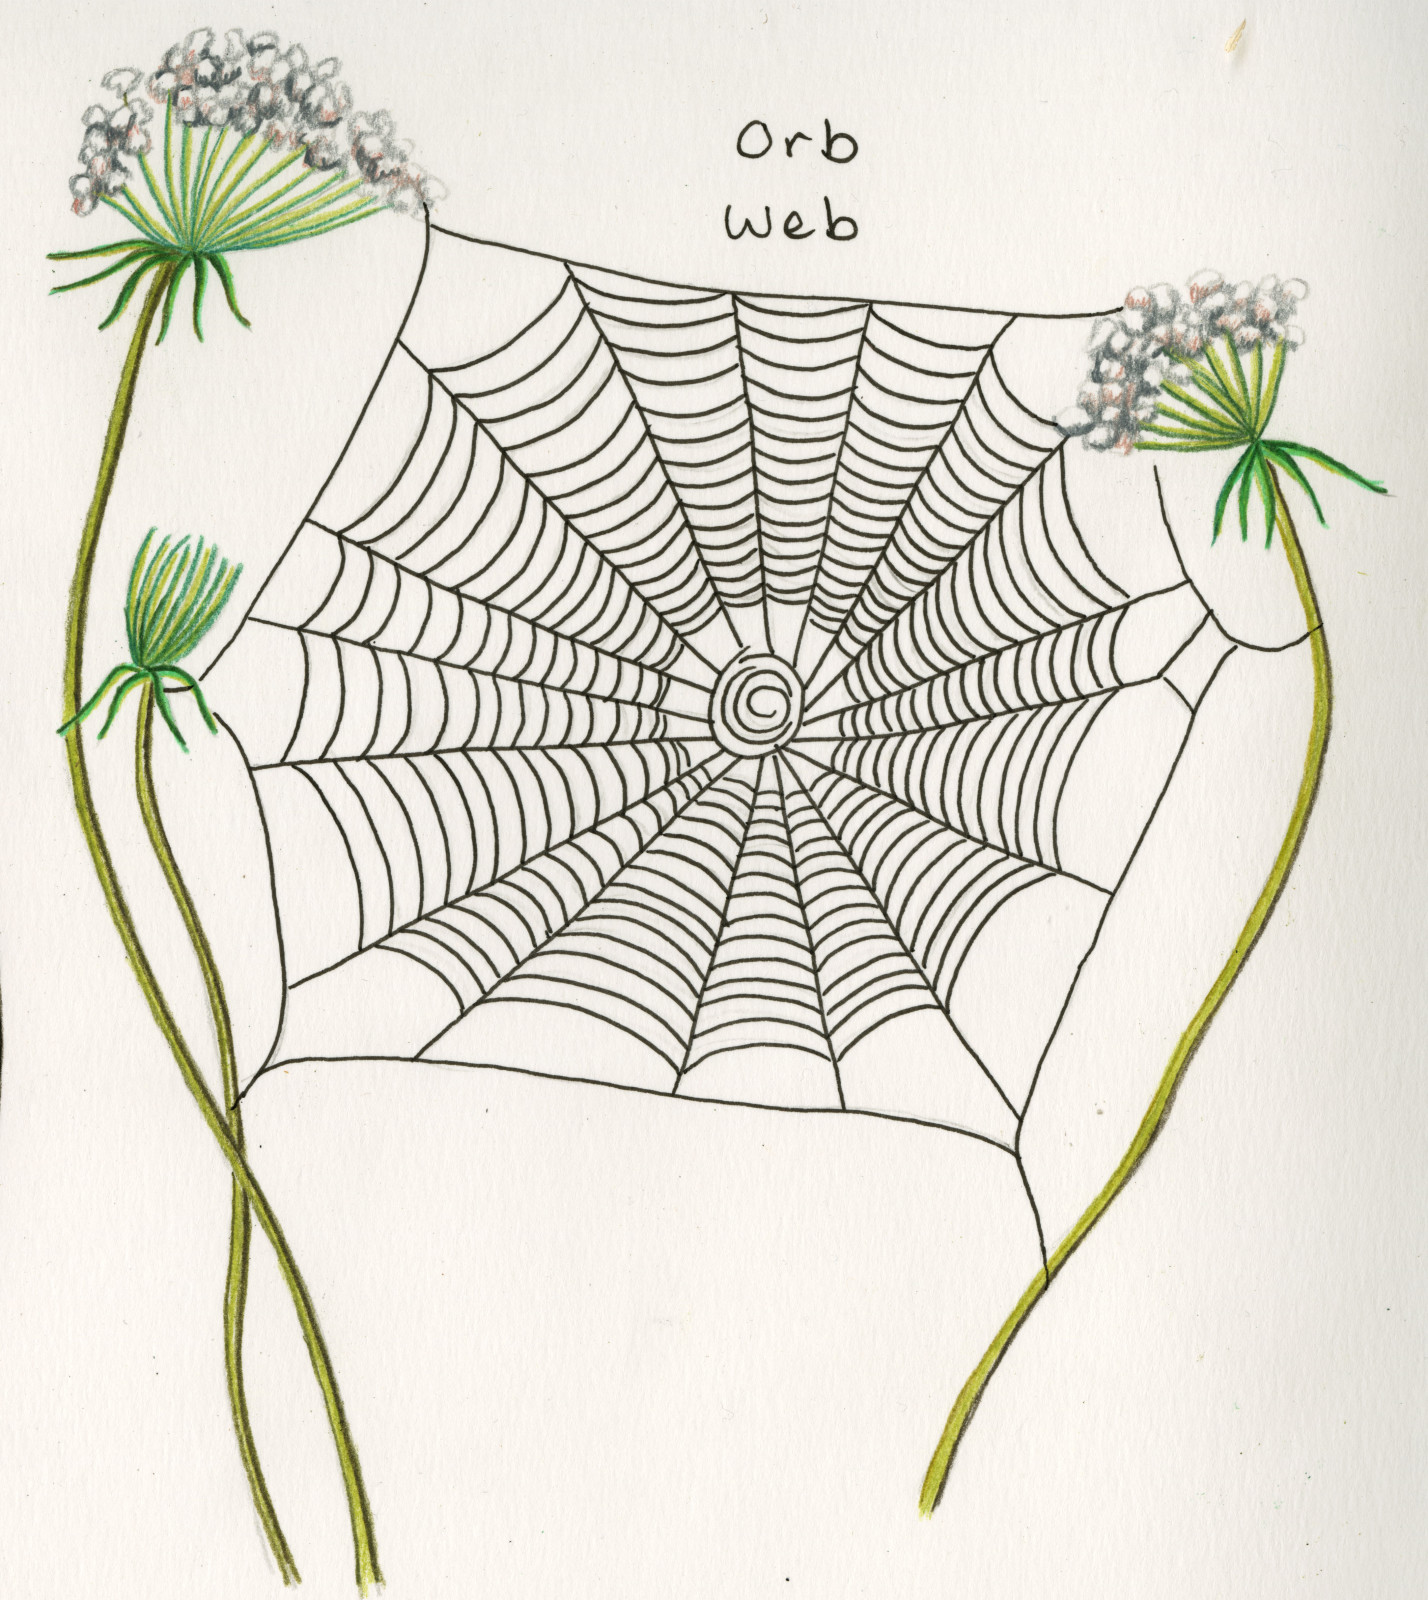 How To Recognize Spiders By Their Webs